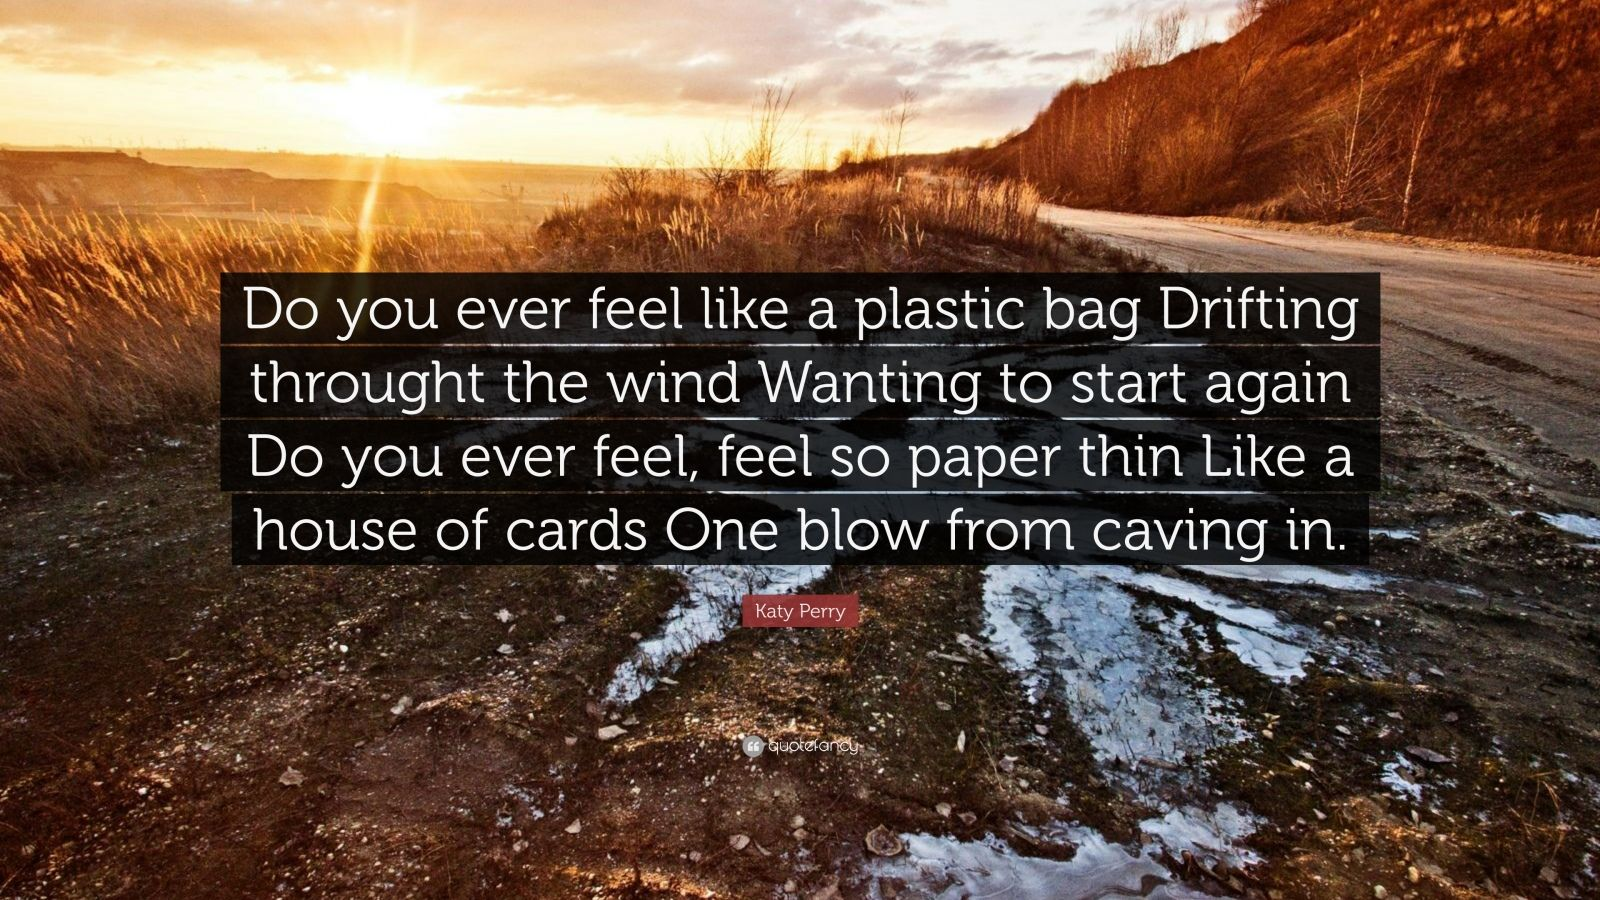 """Katy Perry Quote: """"Do you ever feel like a plastic bag Drifting throught the wind Wanting to start again Do you ever feel, feel so paper thin Like a house of cards One blow from caving in."""""""